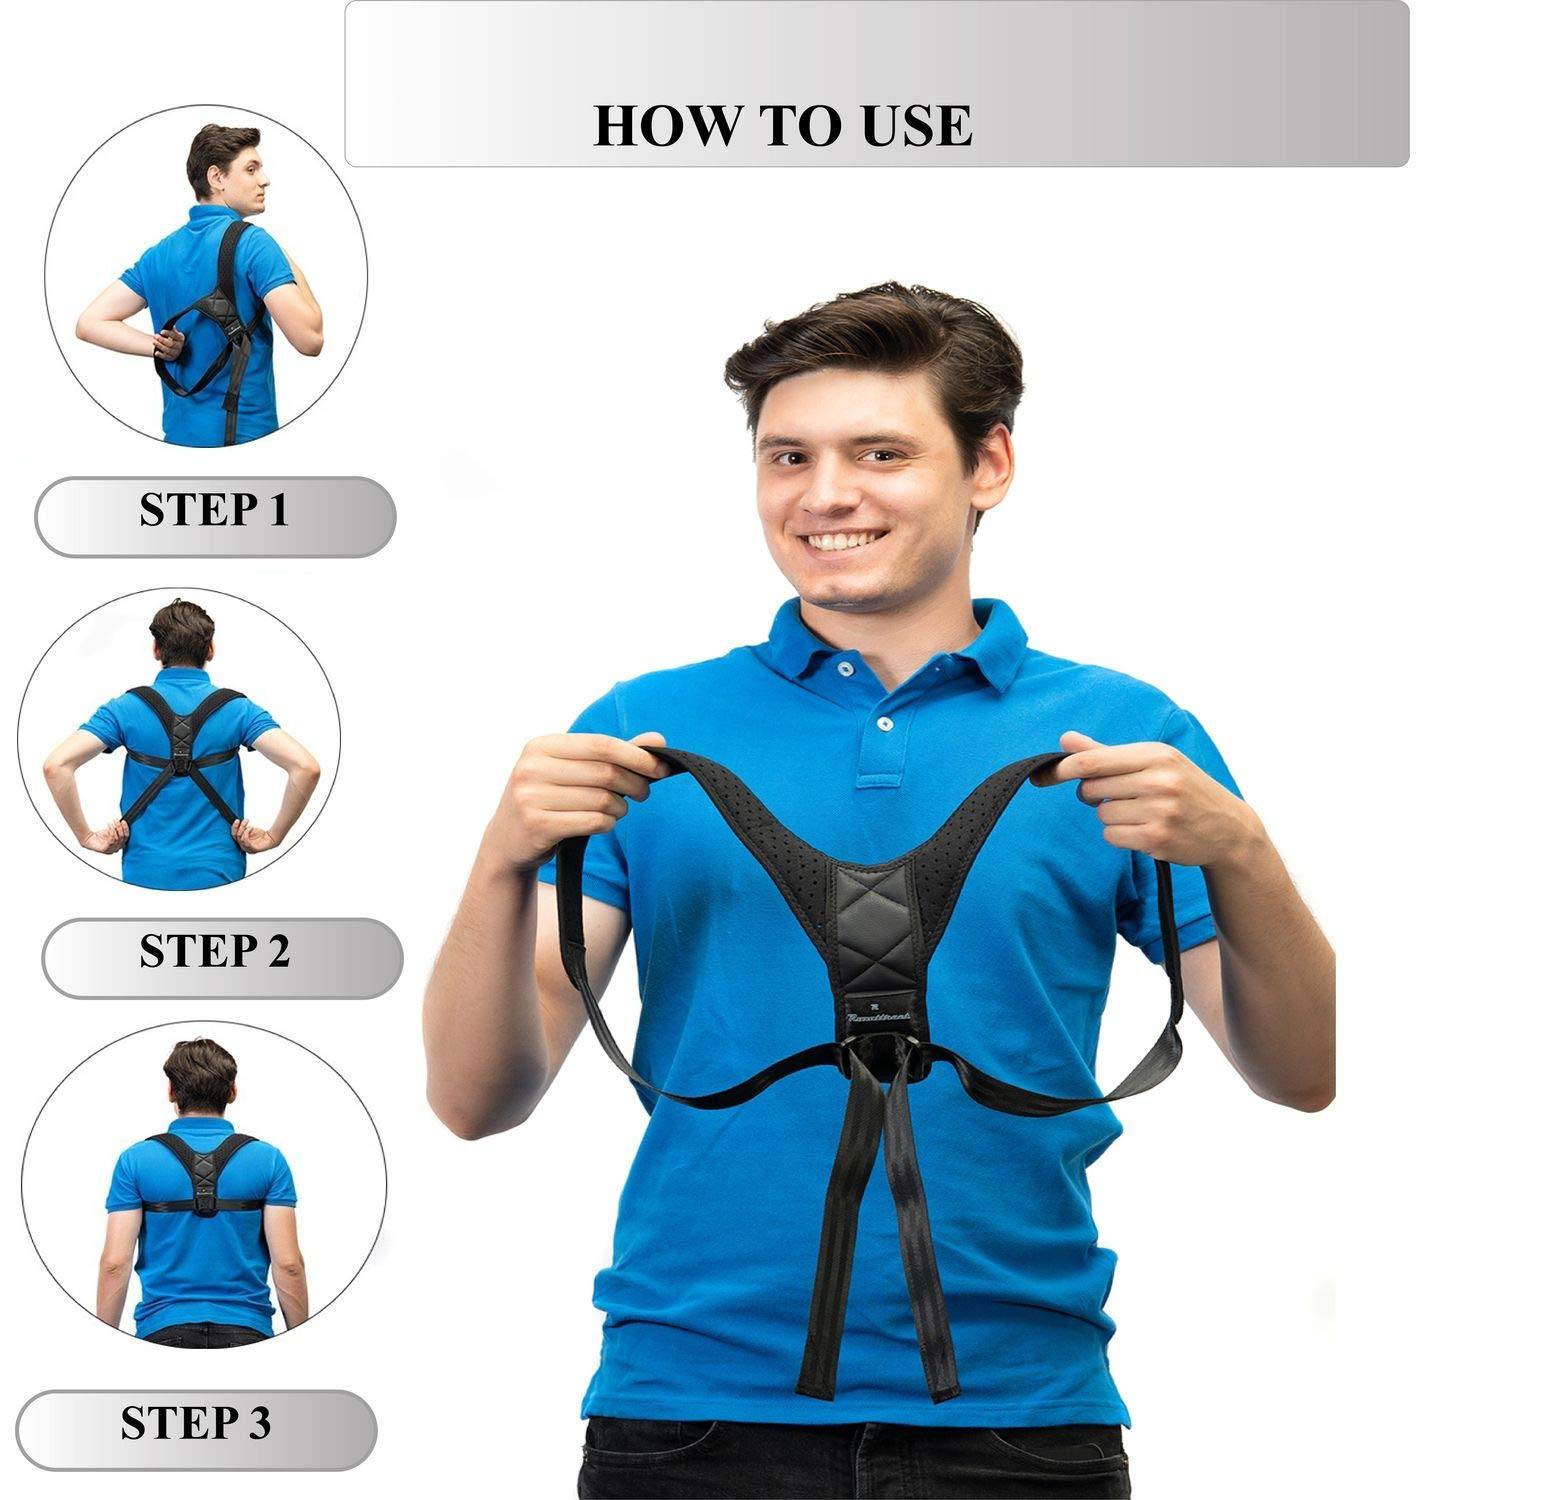 Back Posture Corrector for Women and Men-Breathable and Comfortable Clavicle Brace for Improving Posture-Adjustable and Discreet Clavicle Support Brace for Slouching & Hunching by Roxattract (Image #7)